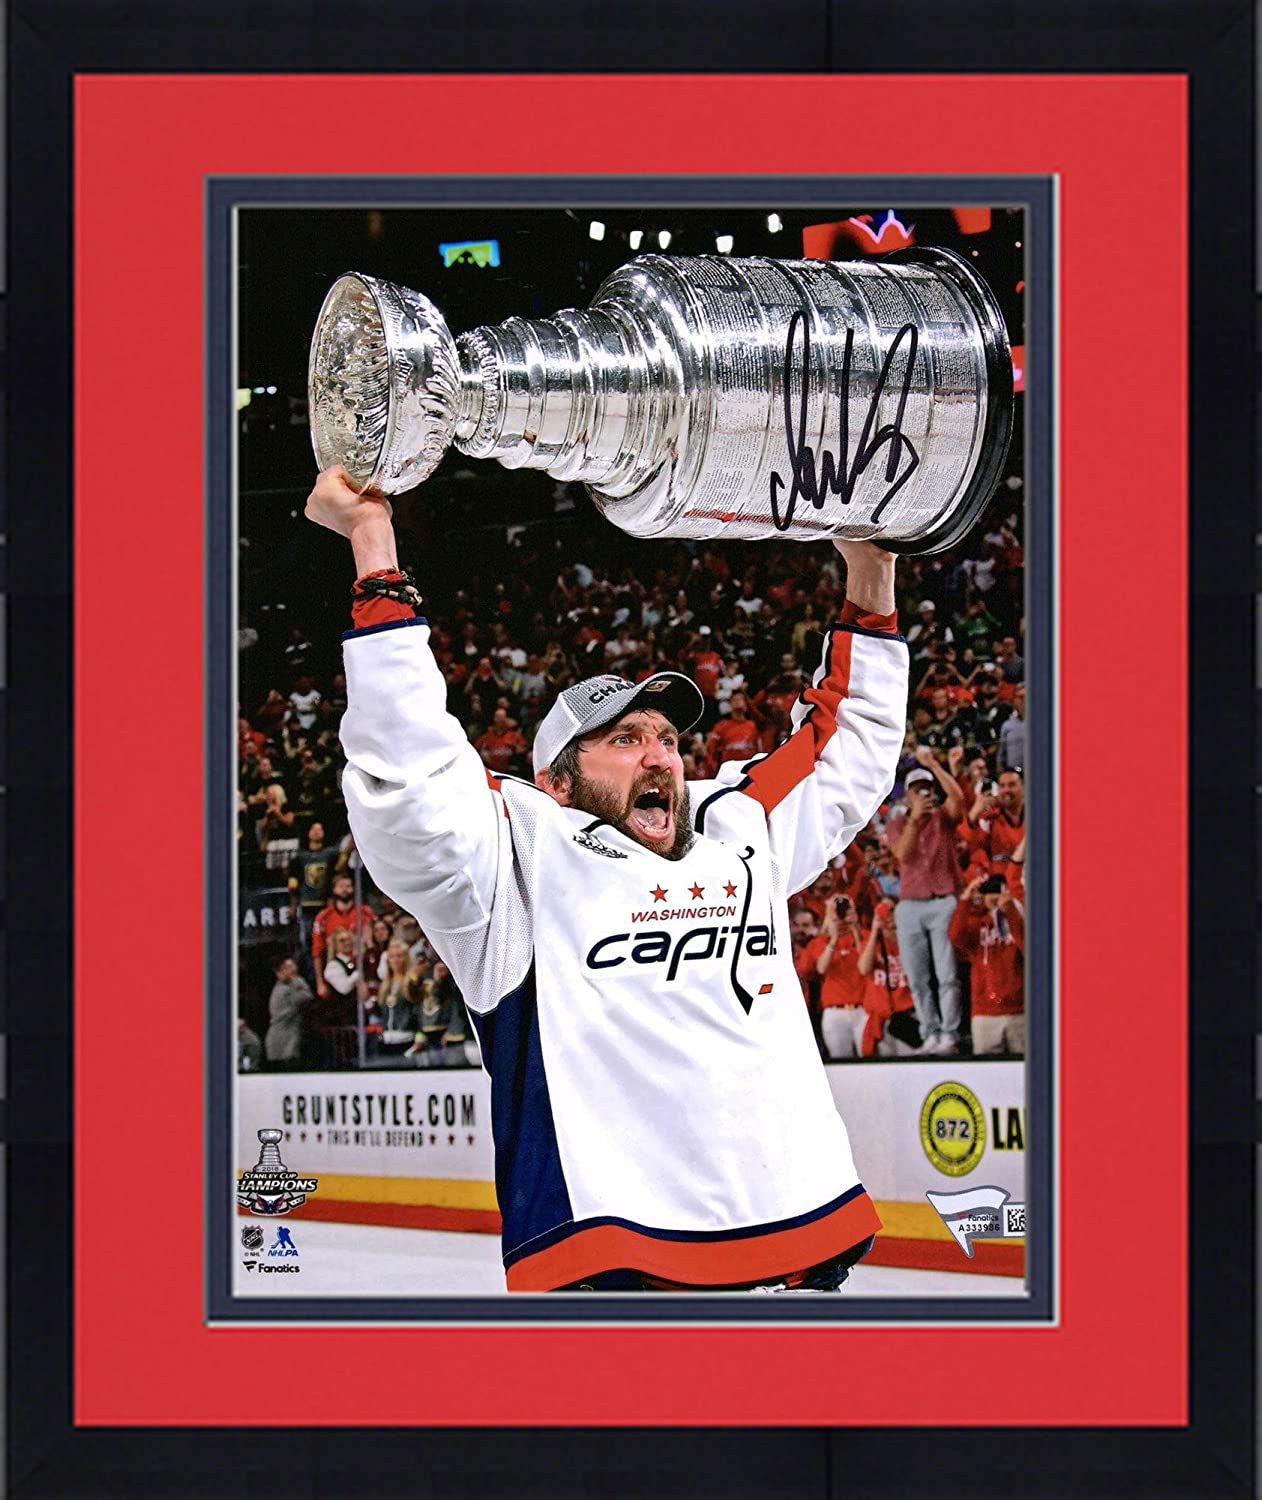 Framed Alex Ovechkin Washington Capitals 2018 Stanley Cup Champions Autographed 8' x 10' Raising Cup Photograph - Fanatics Authentic Certified